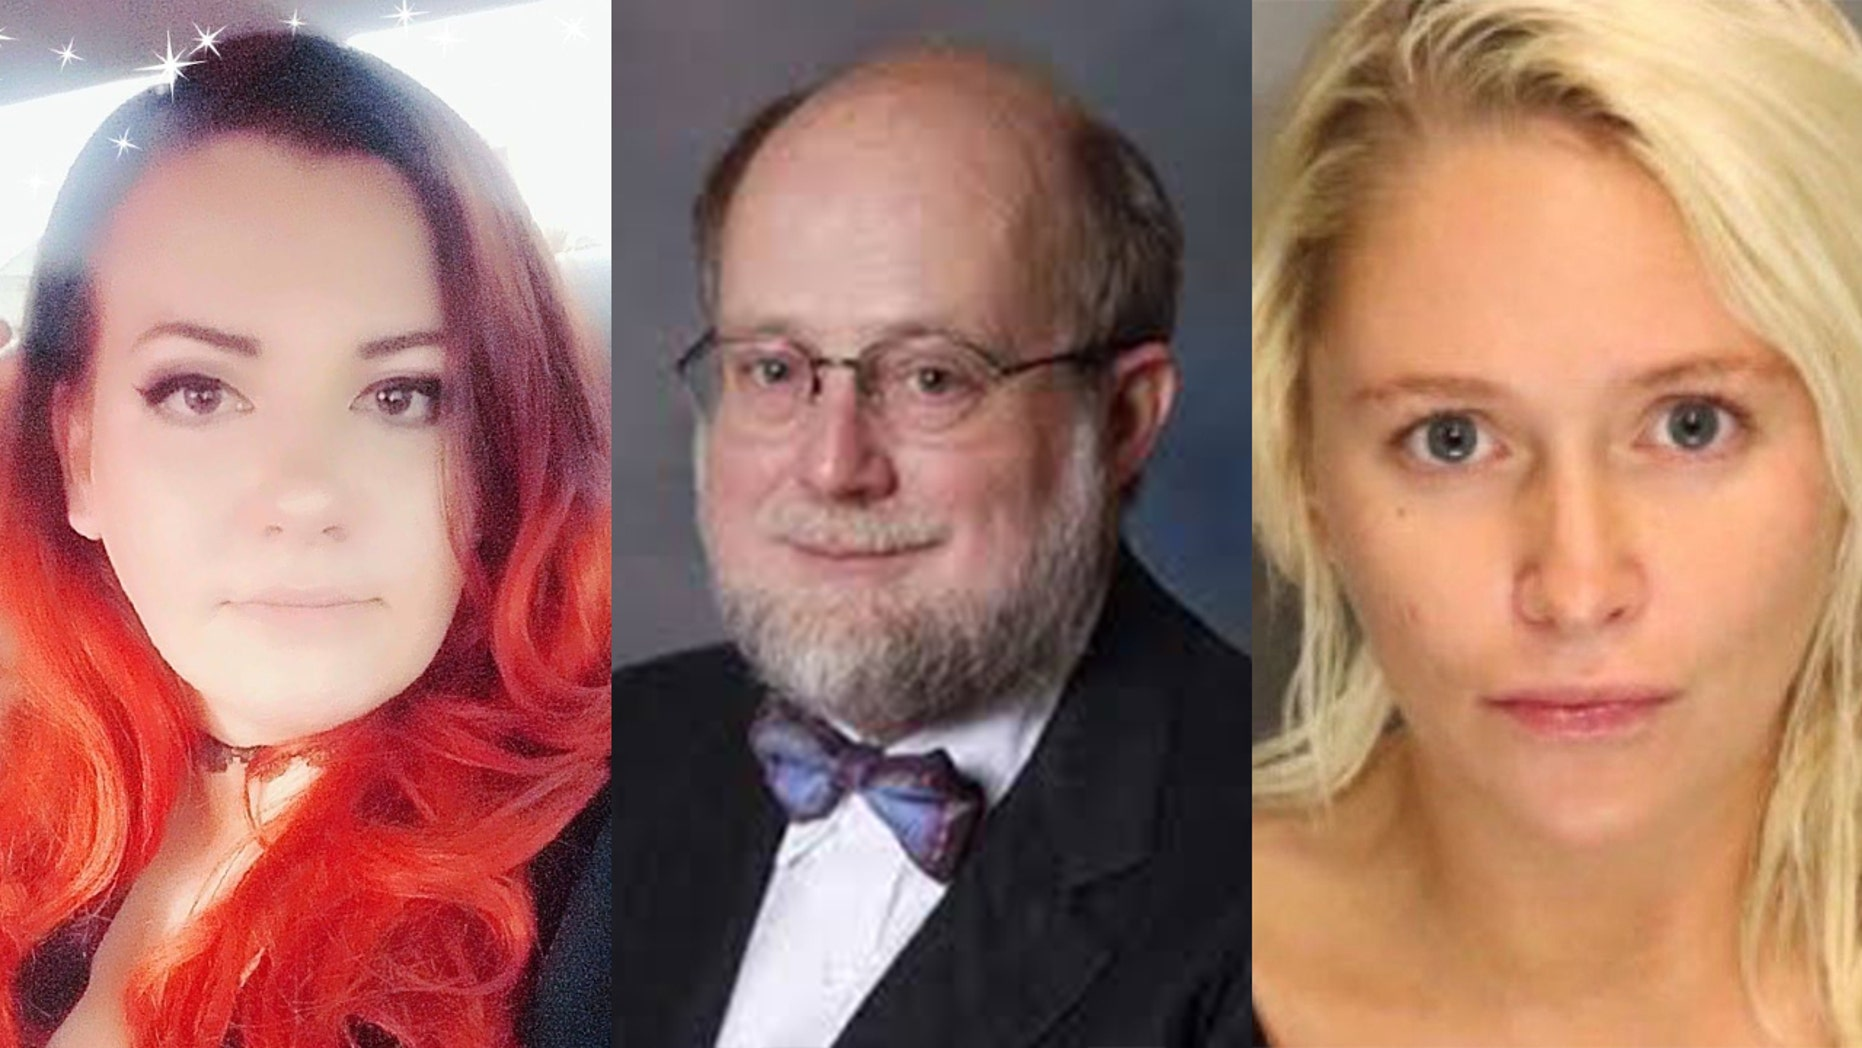 Westlake Legal Group Pena-Burhcard-Turner Second woman arrested in connection to murder of elderly psychiatrist found in the trunk of car in Las Vegas desert fox-news/entertainment/genres/crime fox news fnc/us fnc article Anna Hopkins 109c93cc-38ea-5664-9198-a375e70b688a